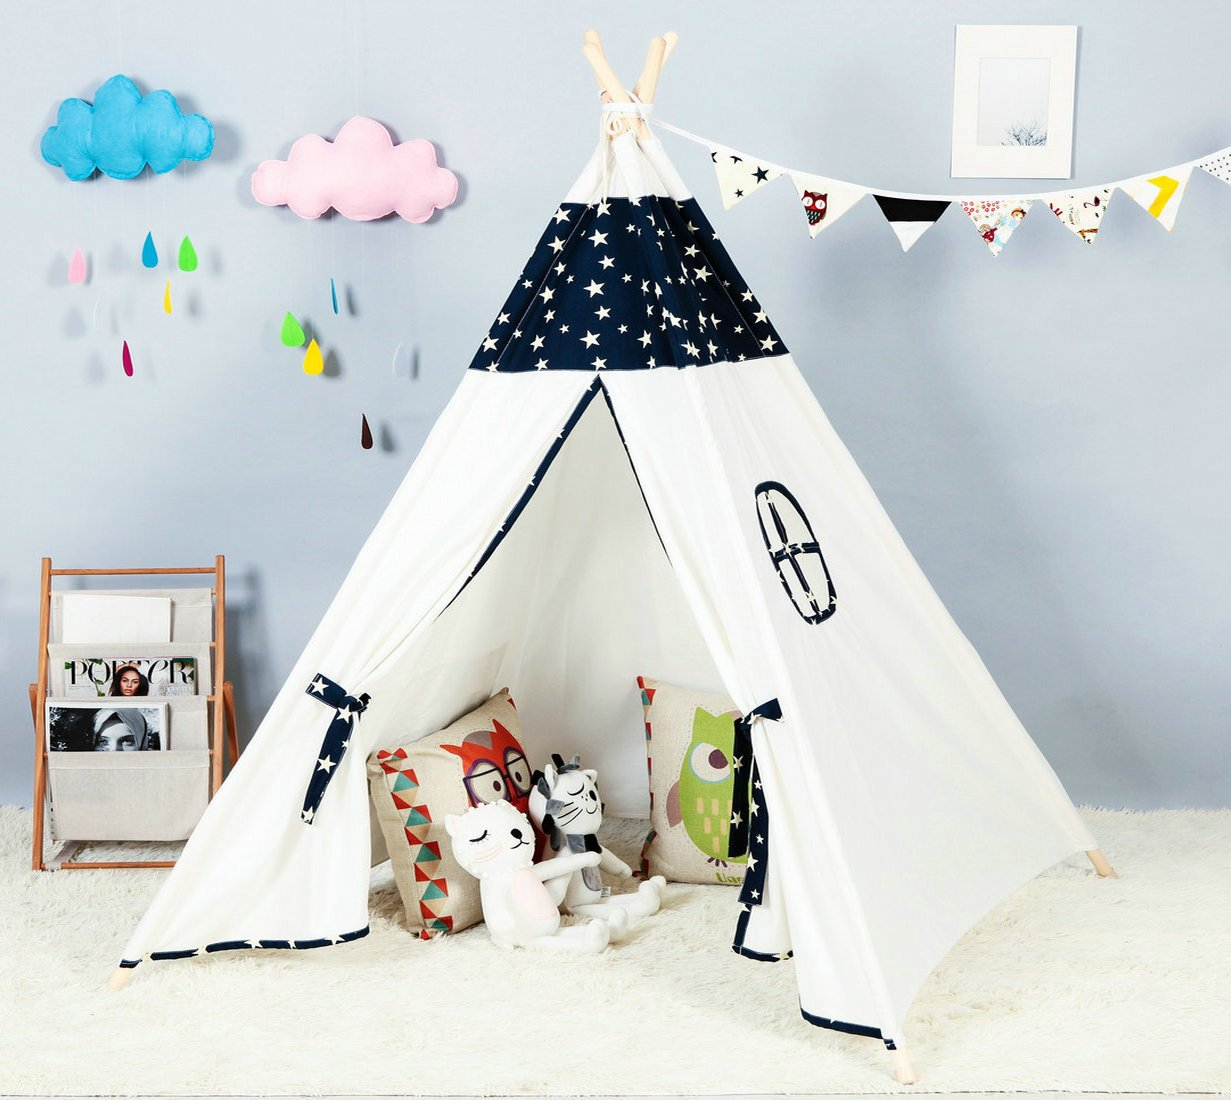 Amazon.com: Steegic Kids Teepee Indoor Play Tent - Large Cotton Canvas Children Indian Tipi Playhouse with Carry Case (Navy Star): Toys & Games